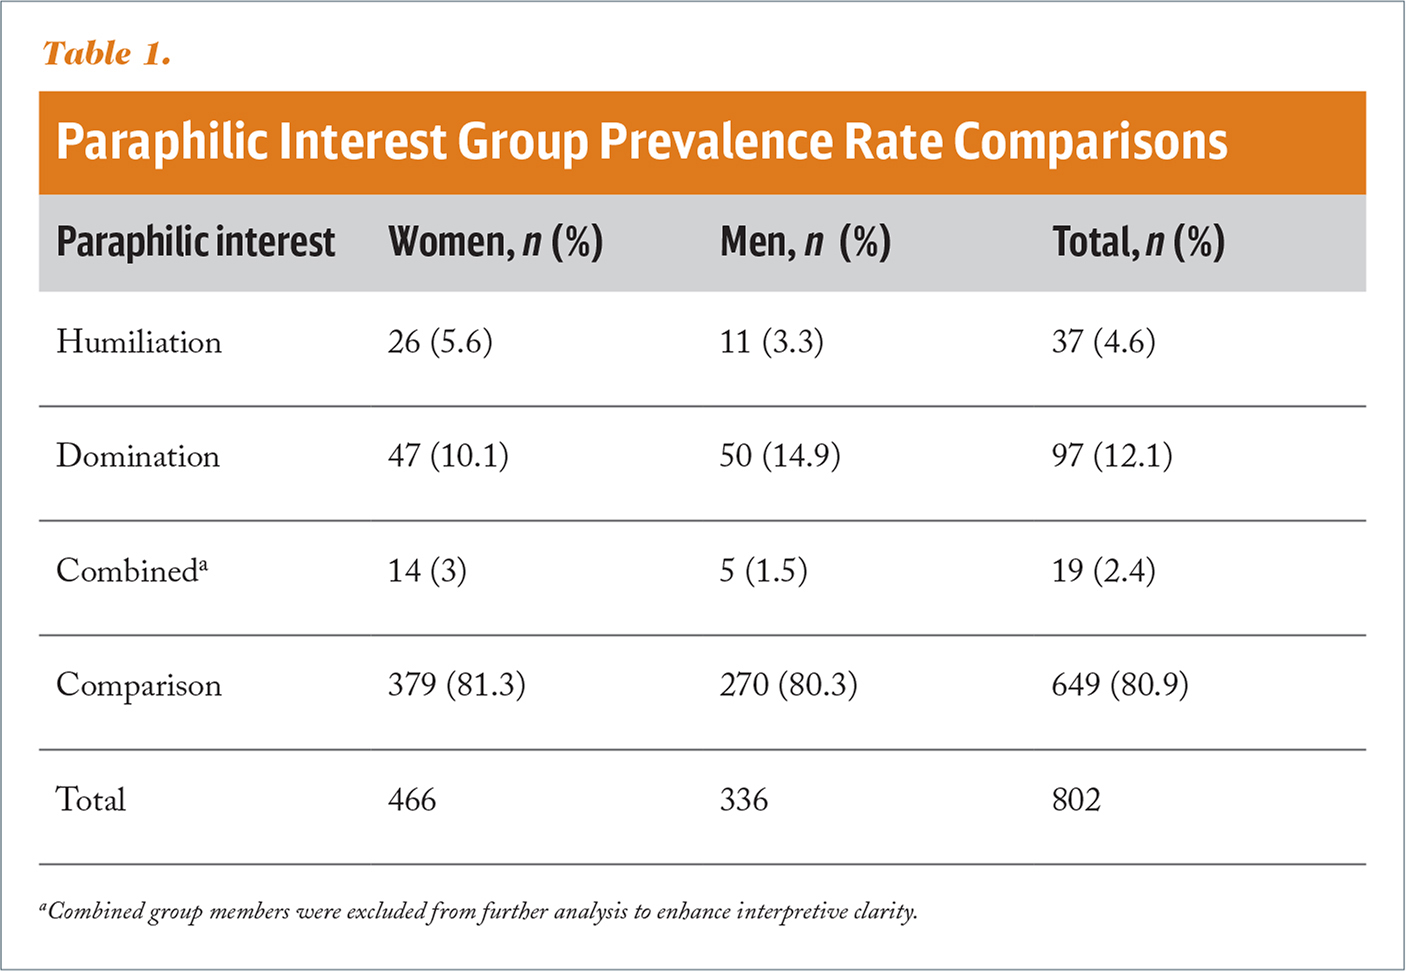 Paraphilic Interest Group Prevalence Rate Comparisons